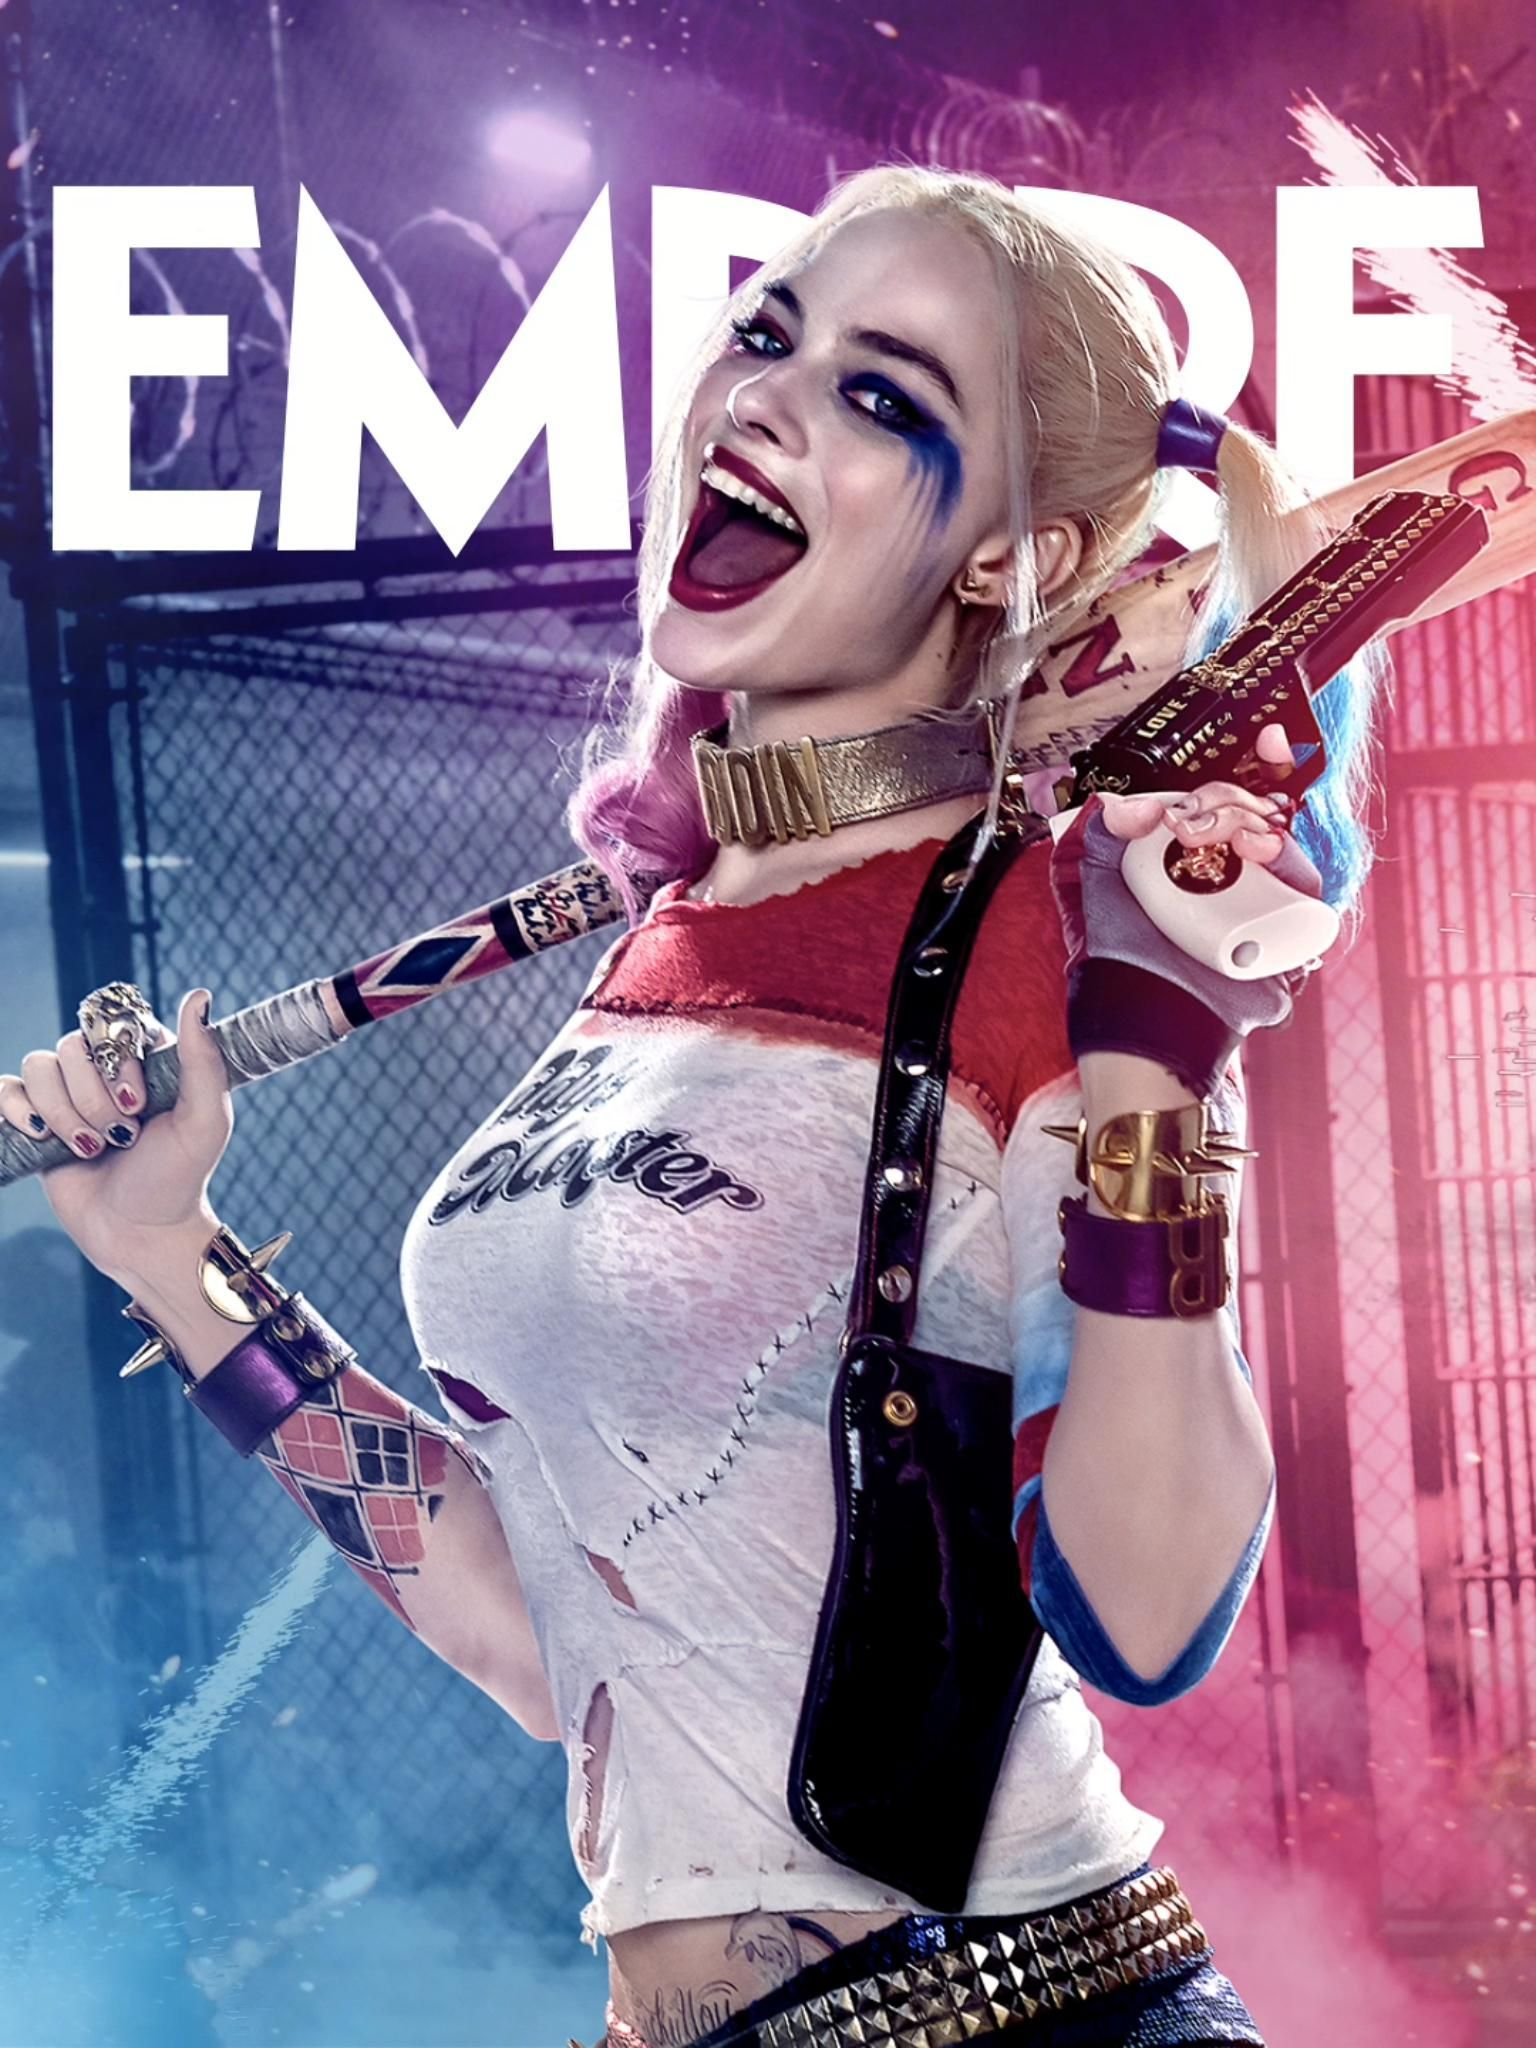 rp15041 POSTER Suicide Squad Harley Quinn Good Night 22x34